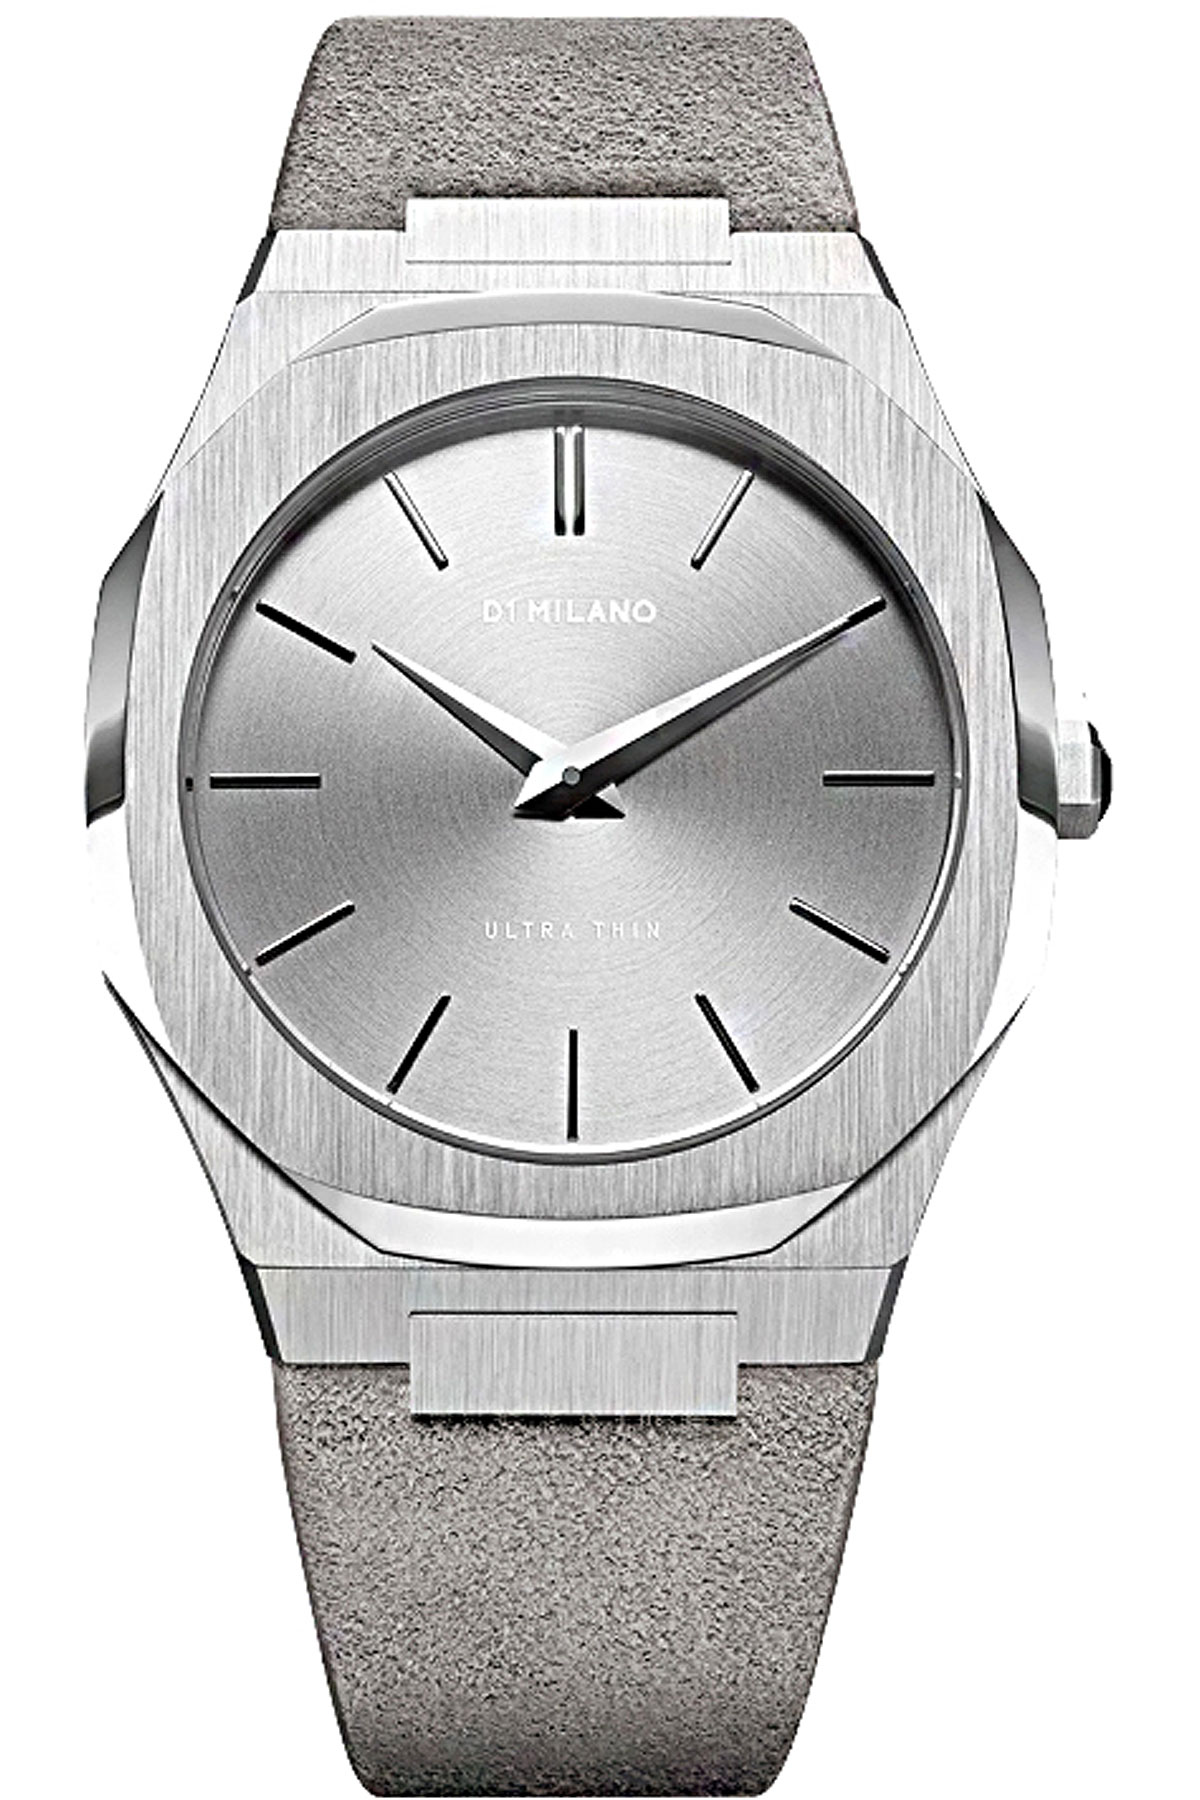 D1 Milano Watch for Men, Grey, Suede leather, 2019